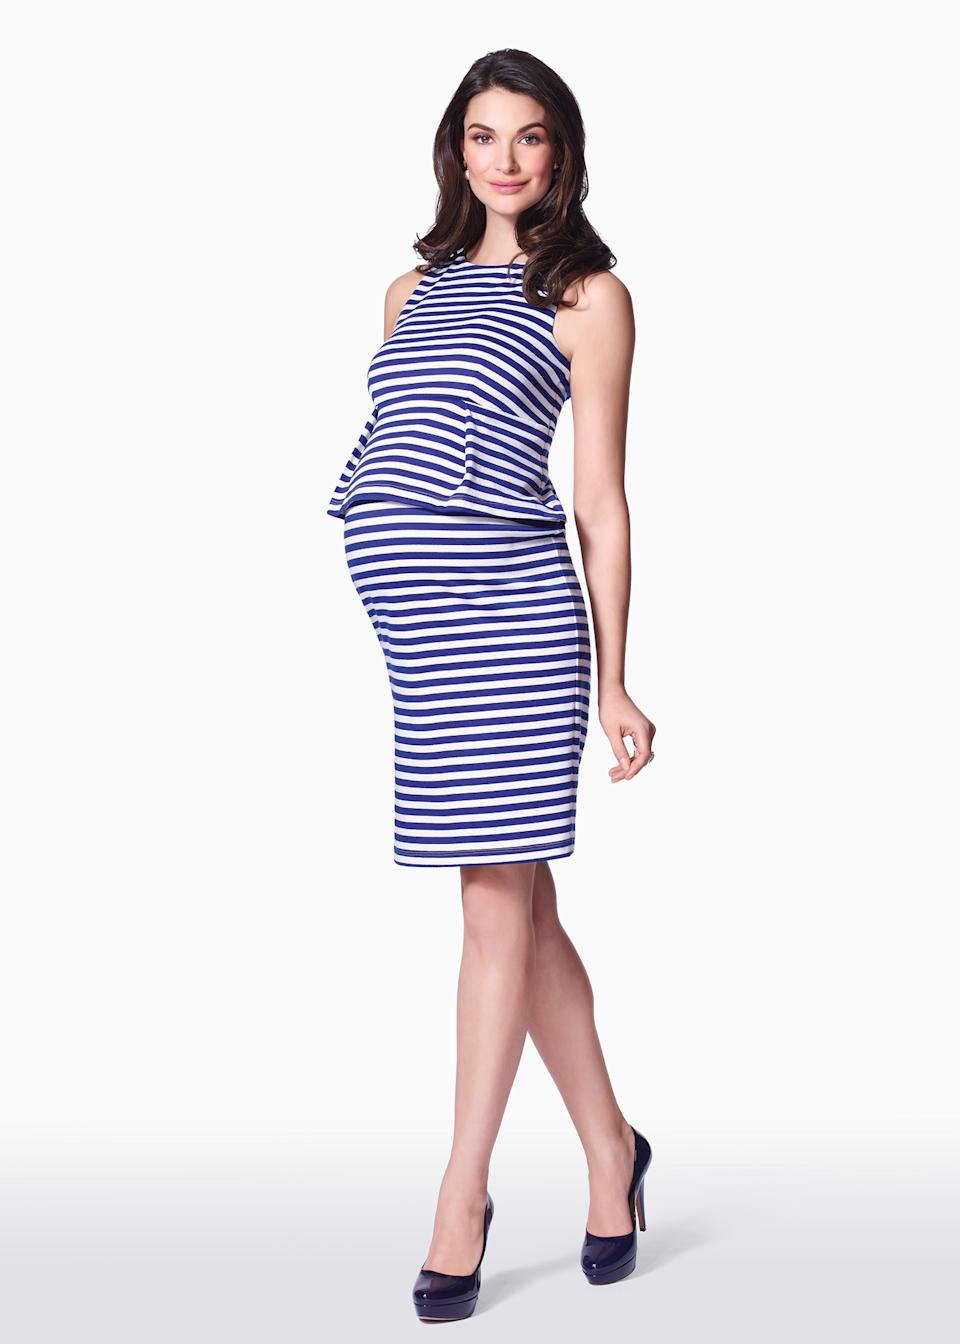 This product image released by maternity clothing company Pea in the Pod shows a two piece striped top and skirt set. Fashion experts say a streamlined style best suits a baby bump. (AP Photo/Pea in the Pod)